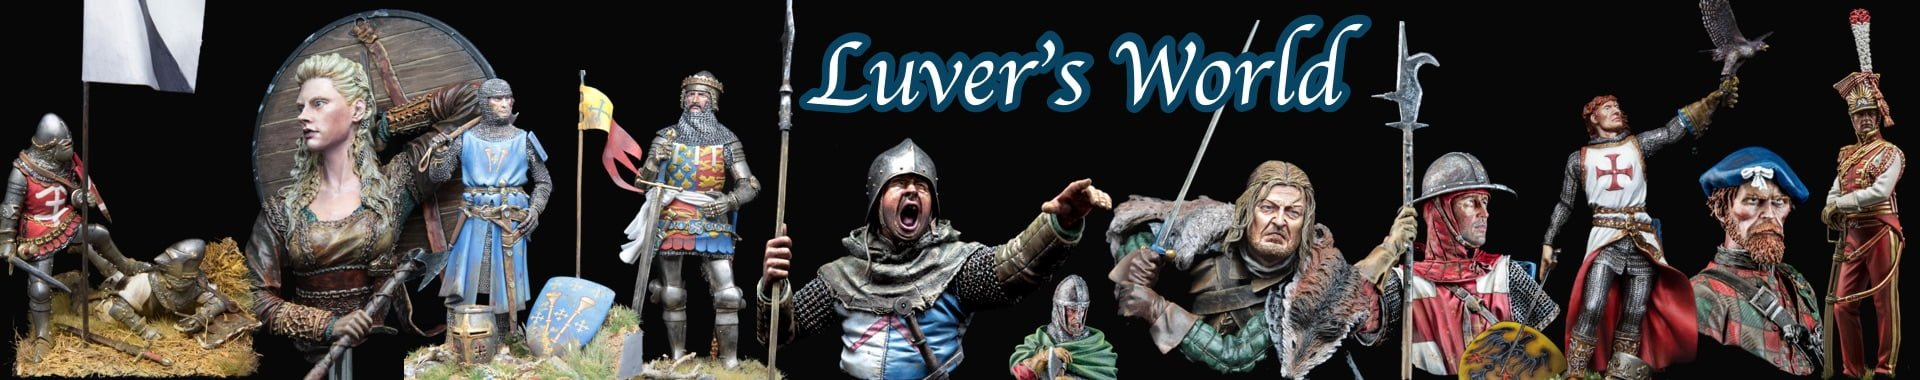 Luver's World